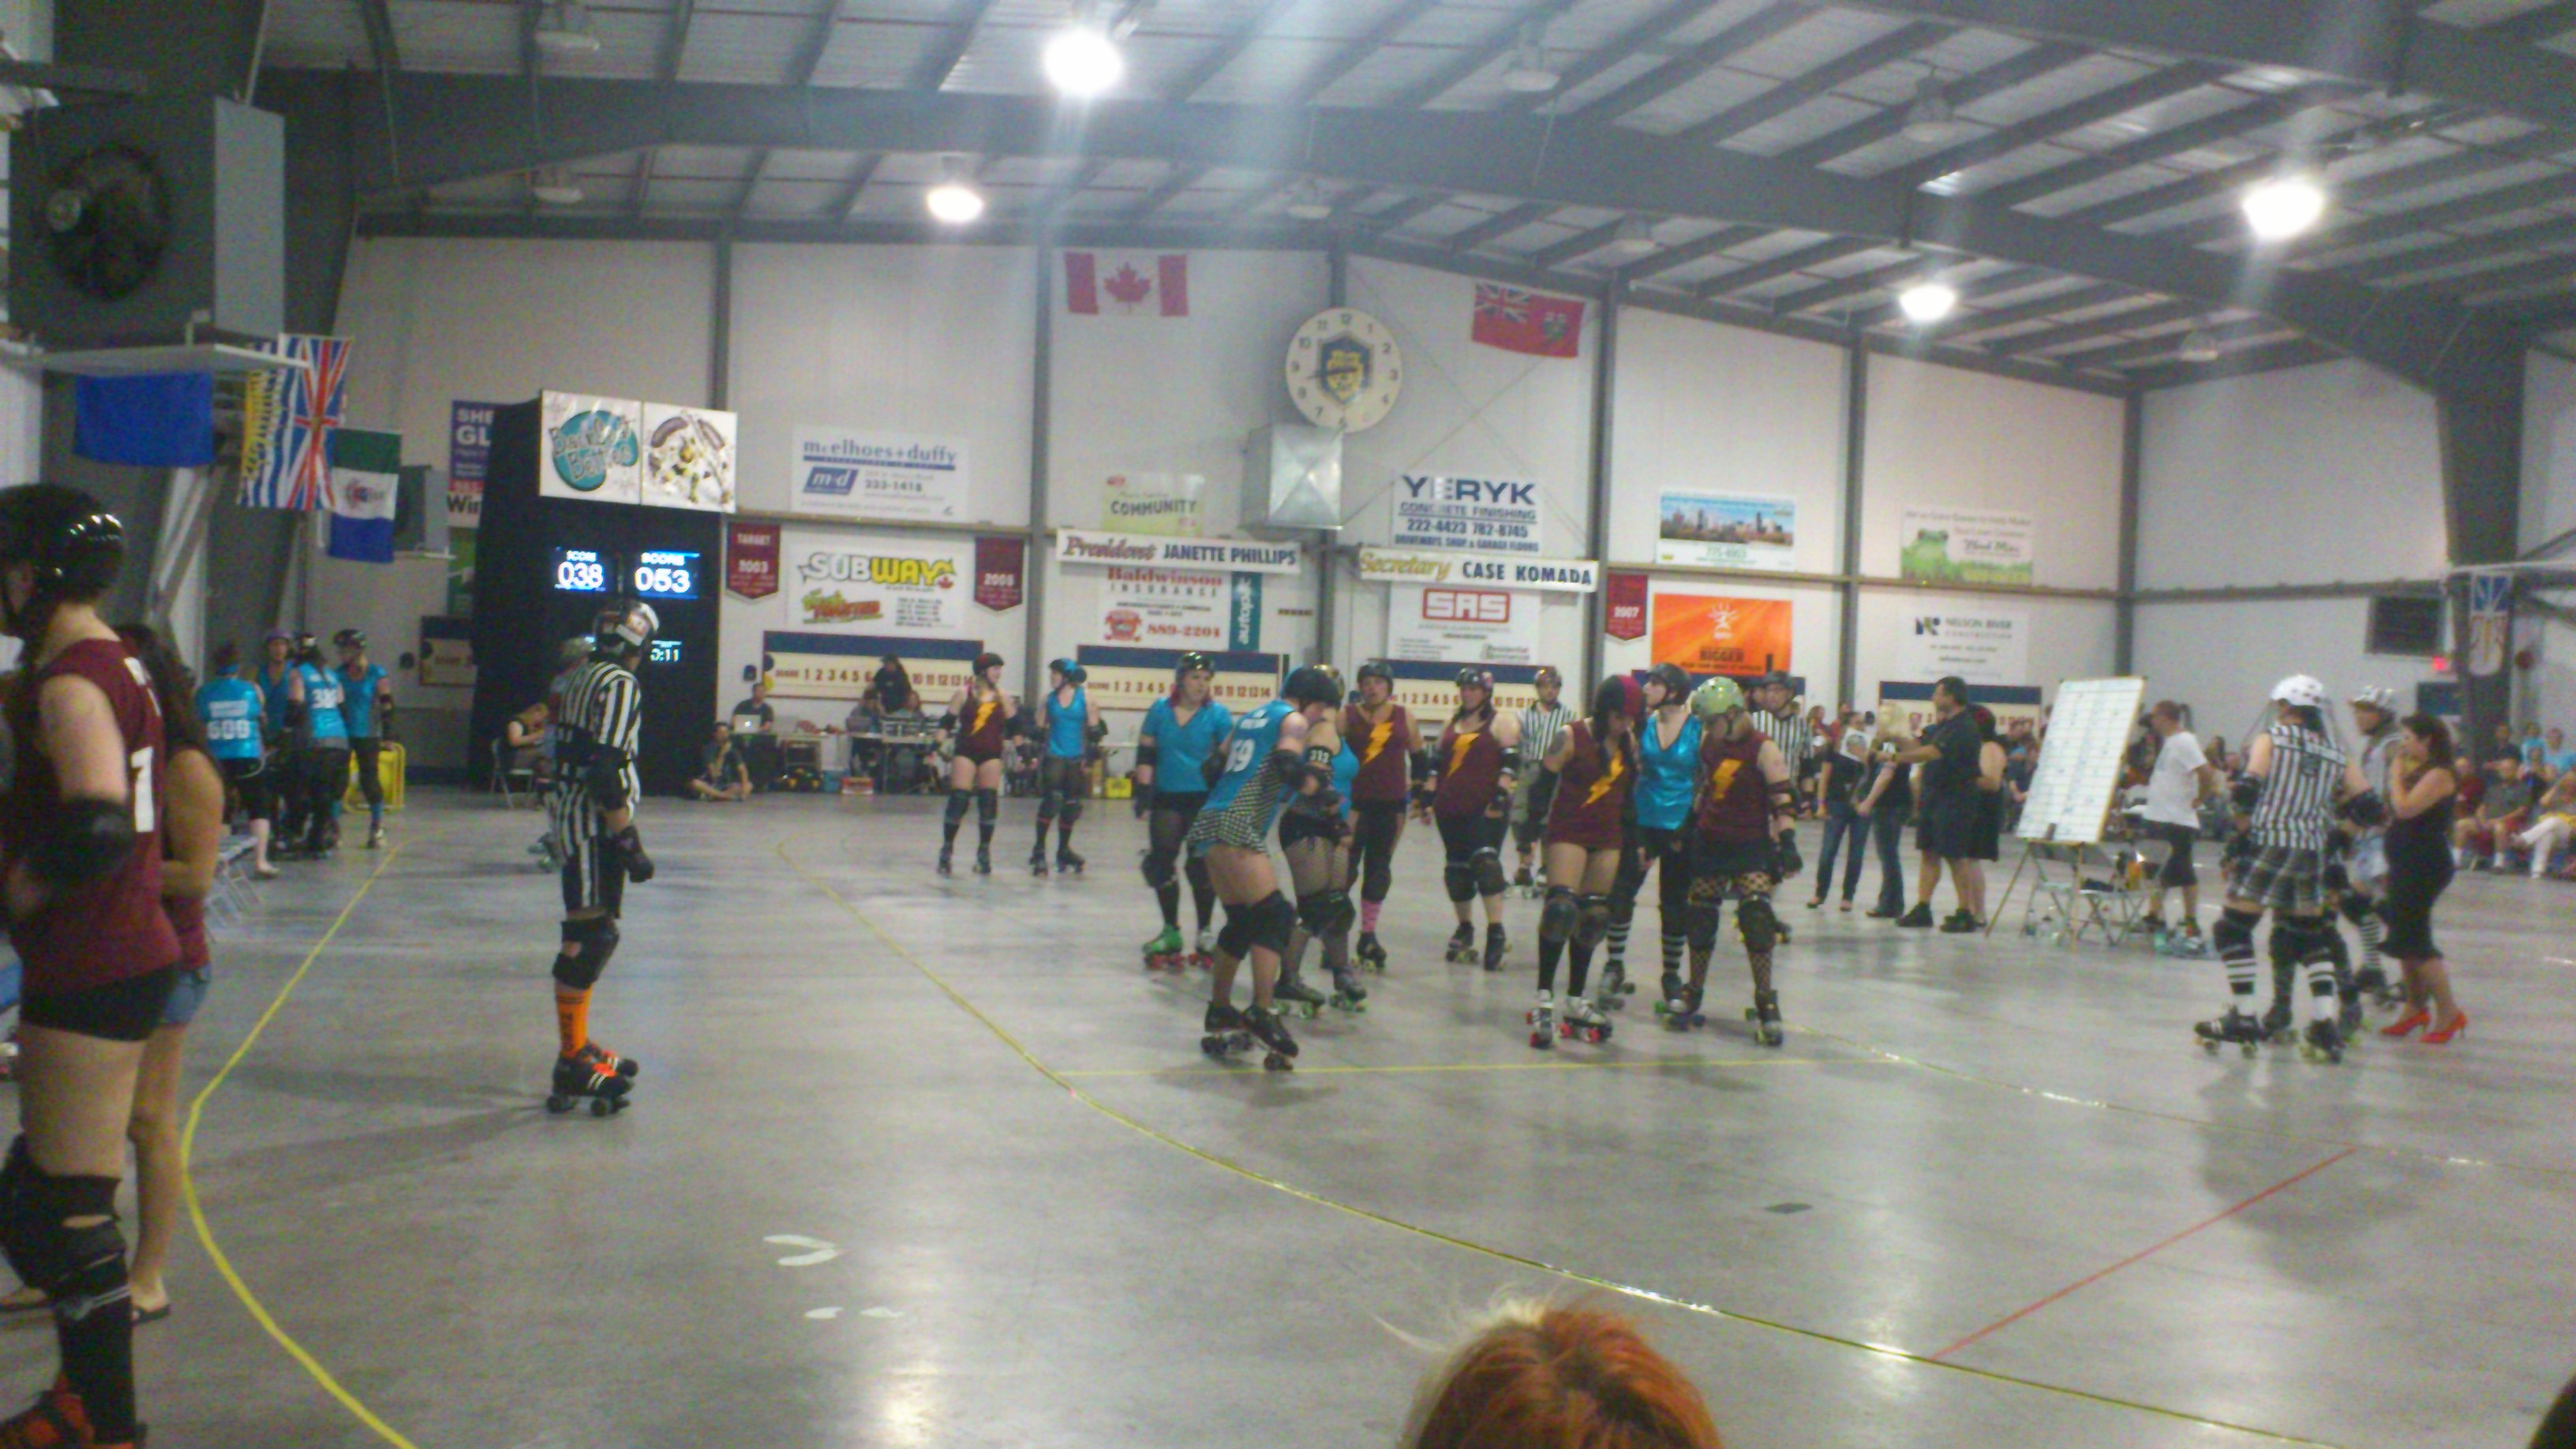 Roller skates winnipeg - The Valkyries Wrath Line Up Against The Backseat Betties